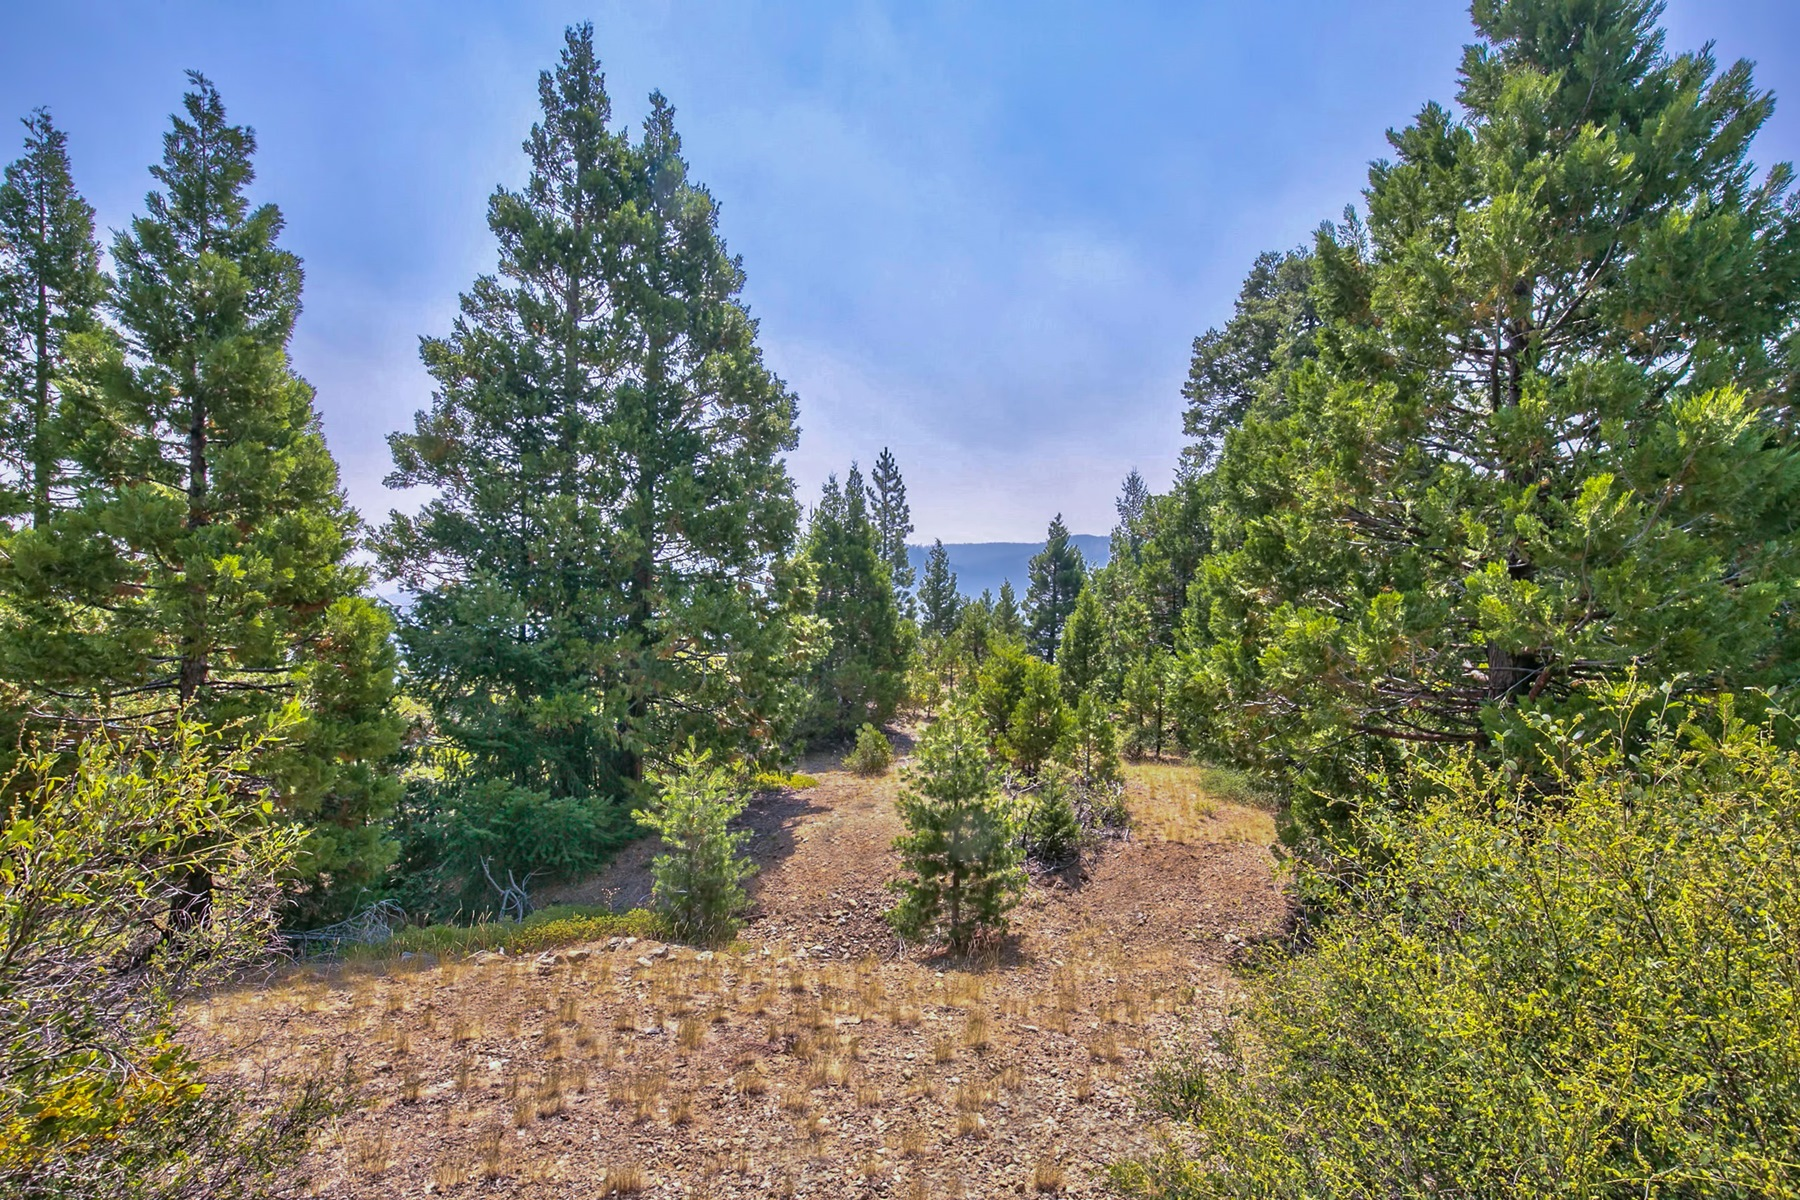 Additional photo for property listing at 008-120-029, 008-120-038 Sierra Buttes Road Sierra City, California 96125 United States